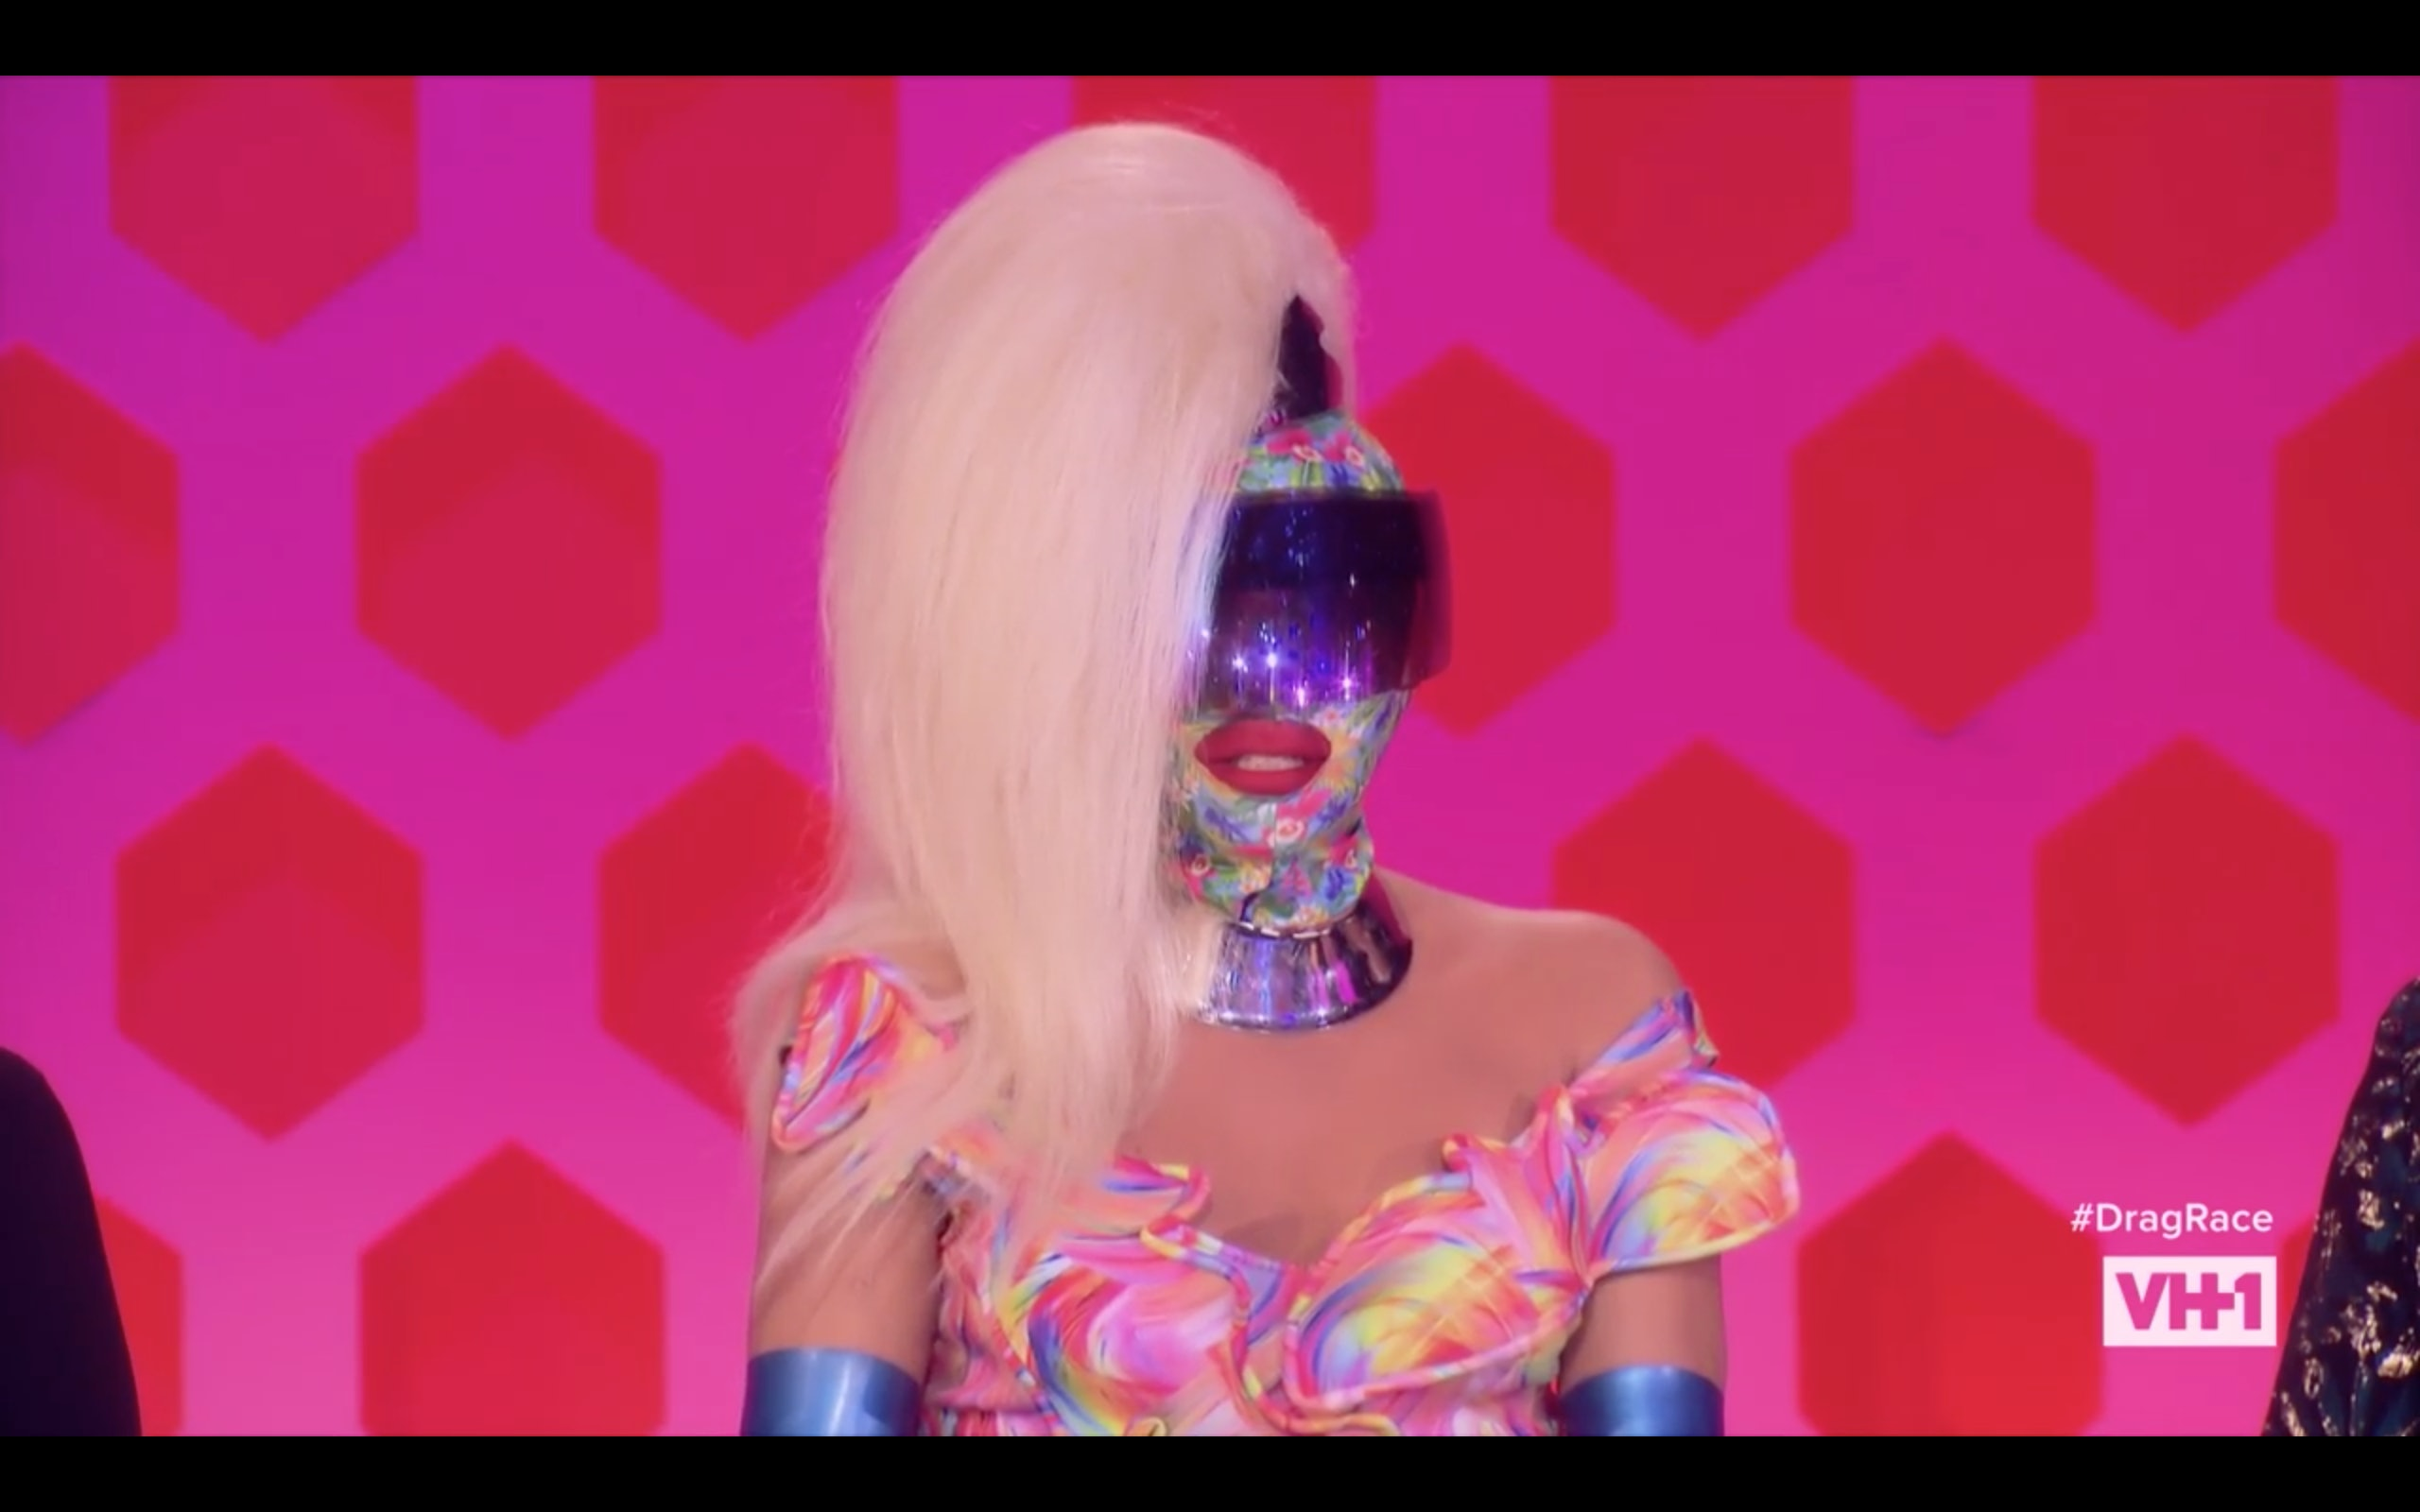 RuPaul's Drag Race' season 10 episode 4: The end-of-days